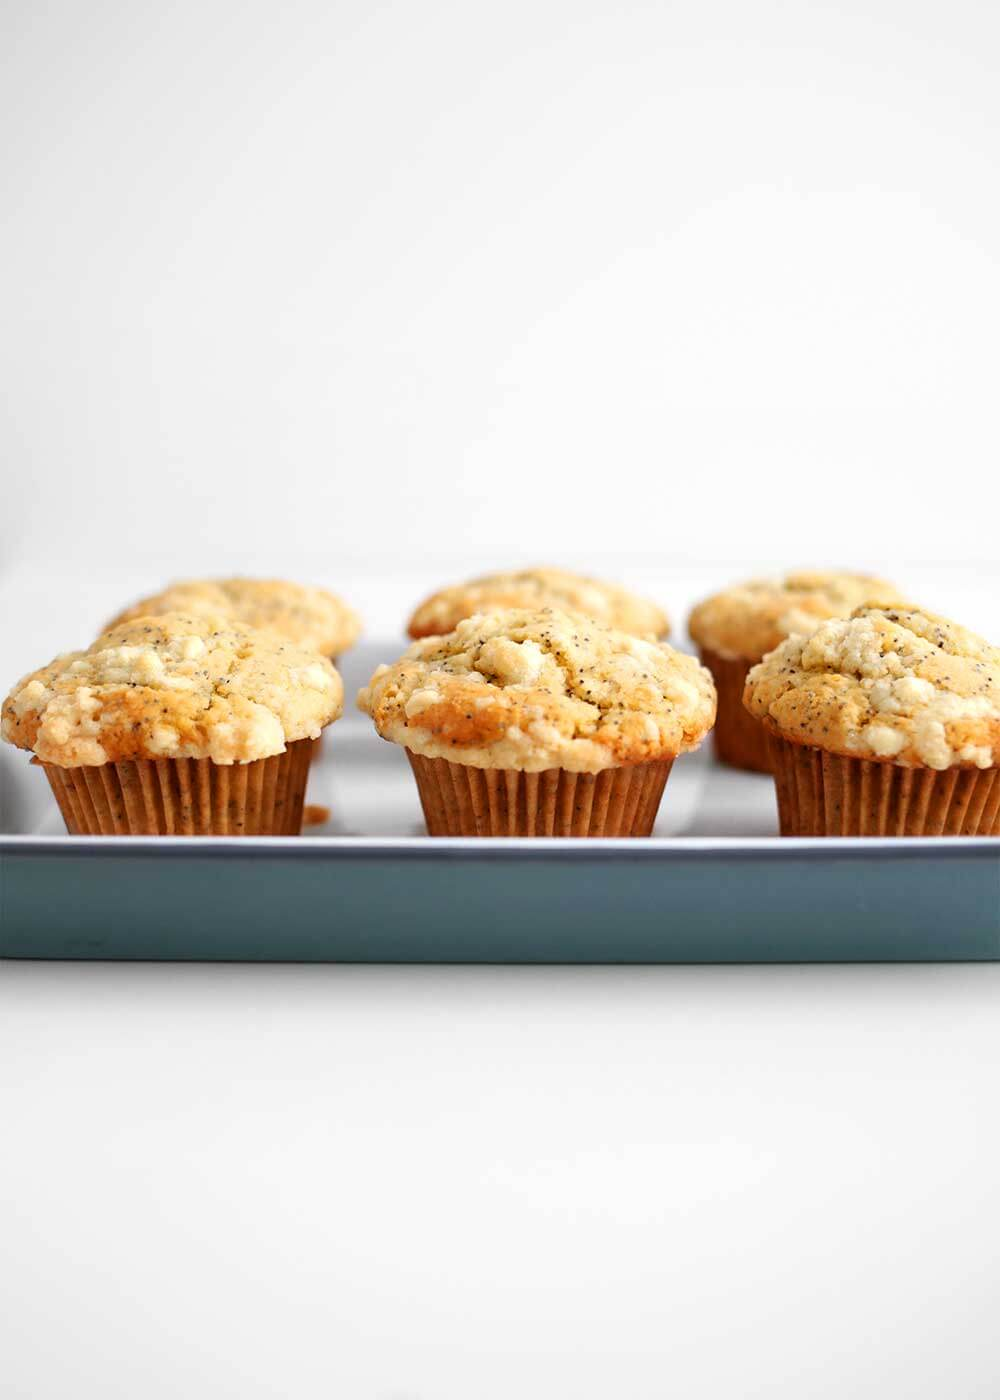 healthy lemon poppy seed muffins on a tray from the faux martha